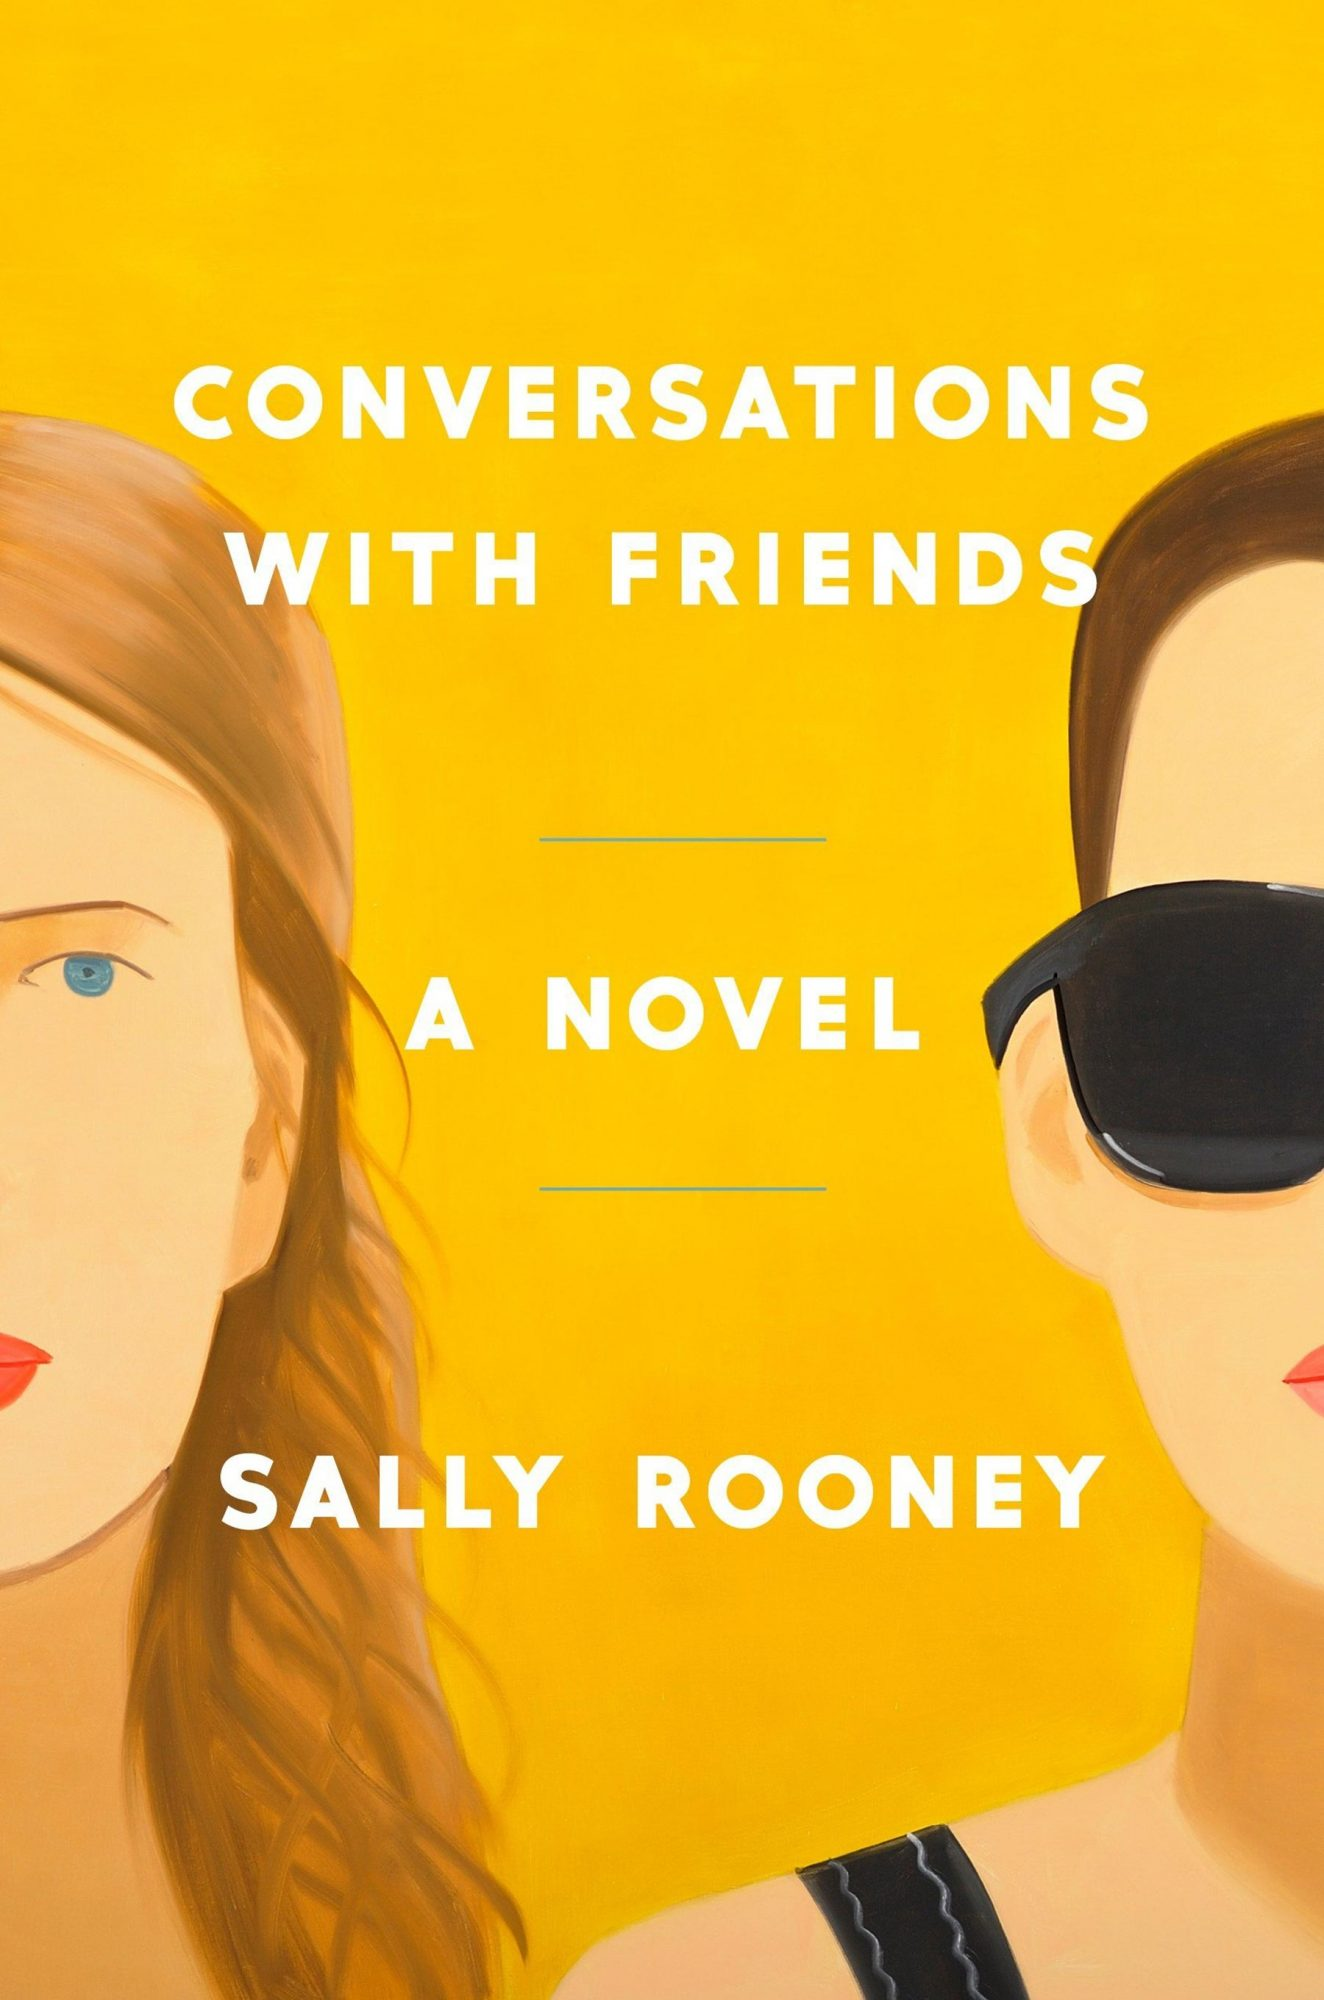 _Conversations-with-Friends-by-Sally-Rooney